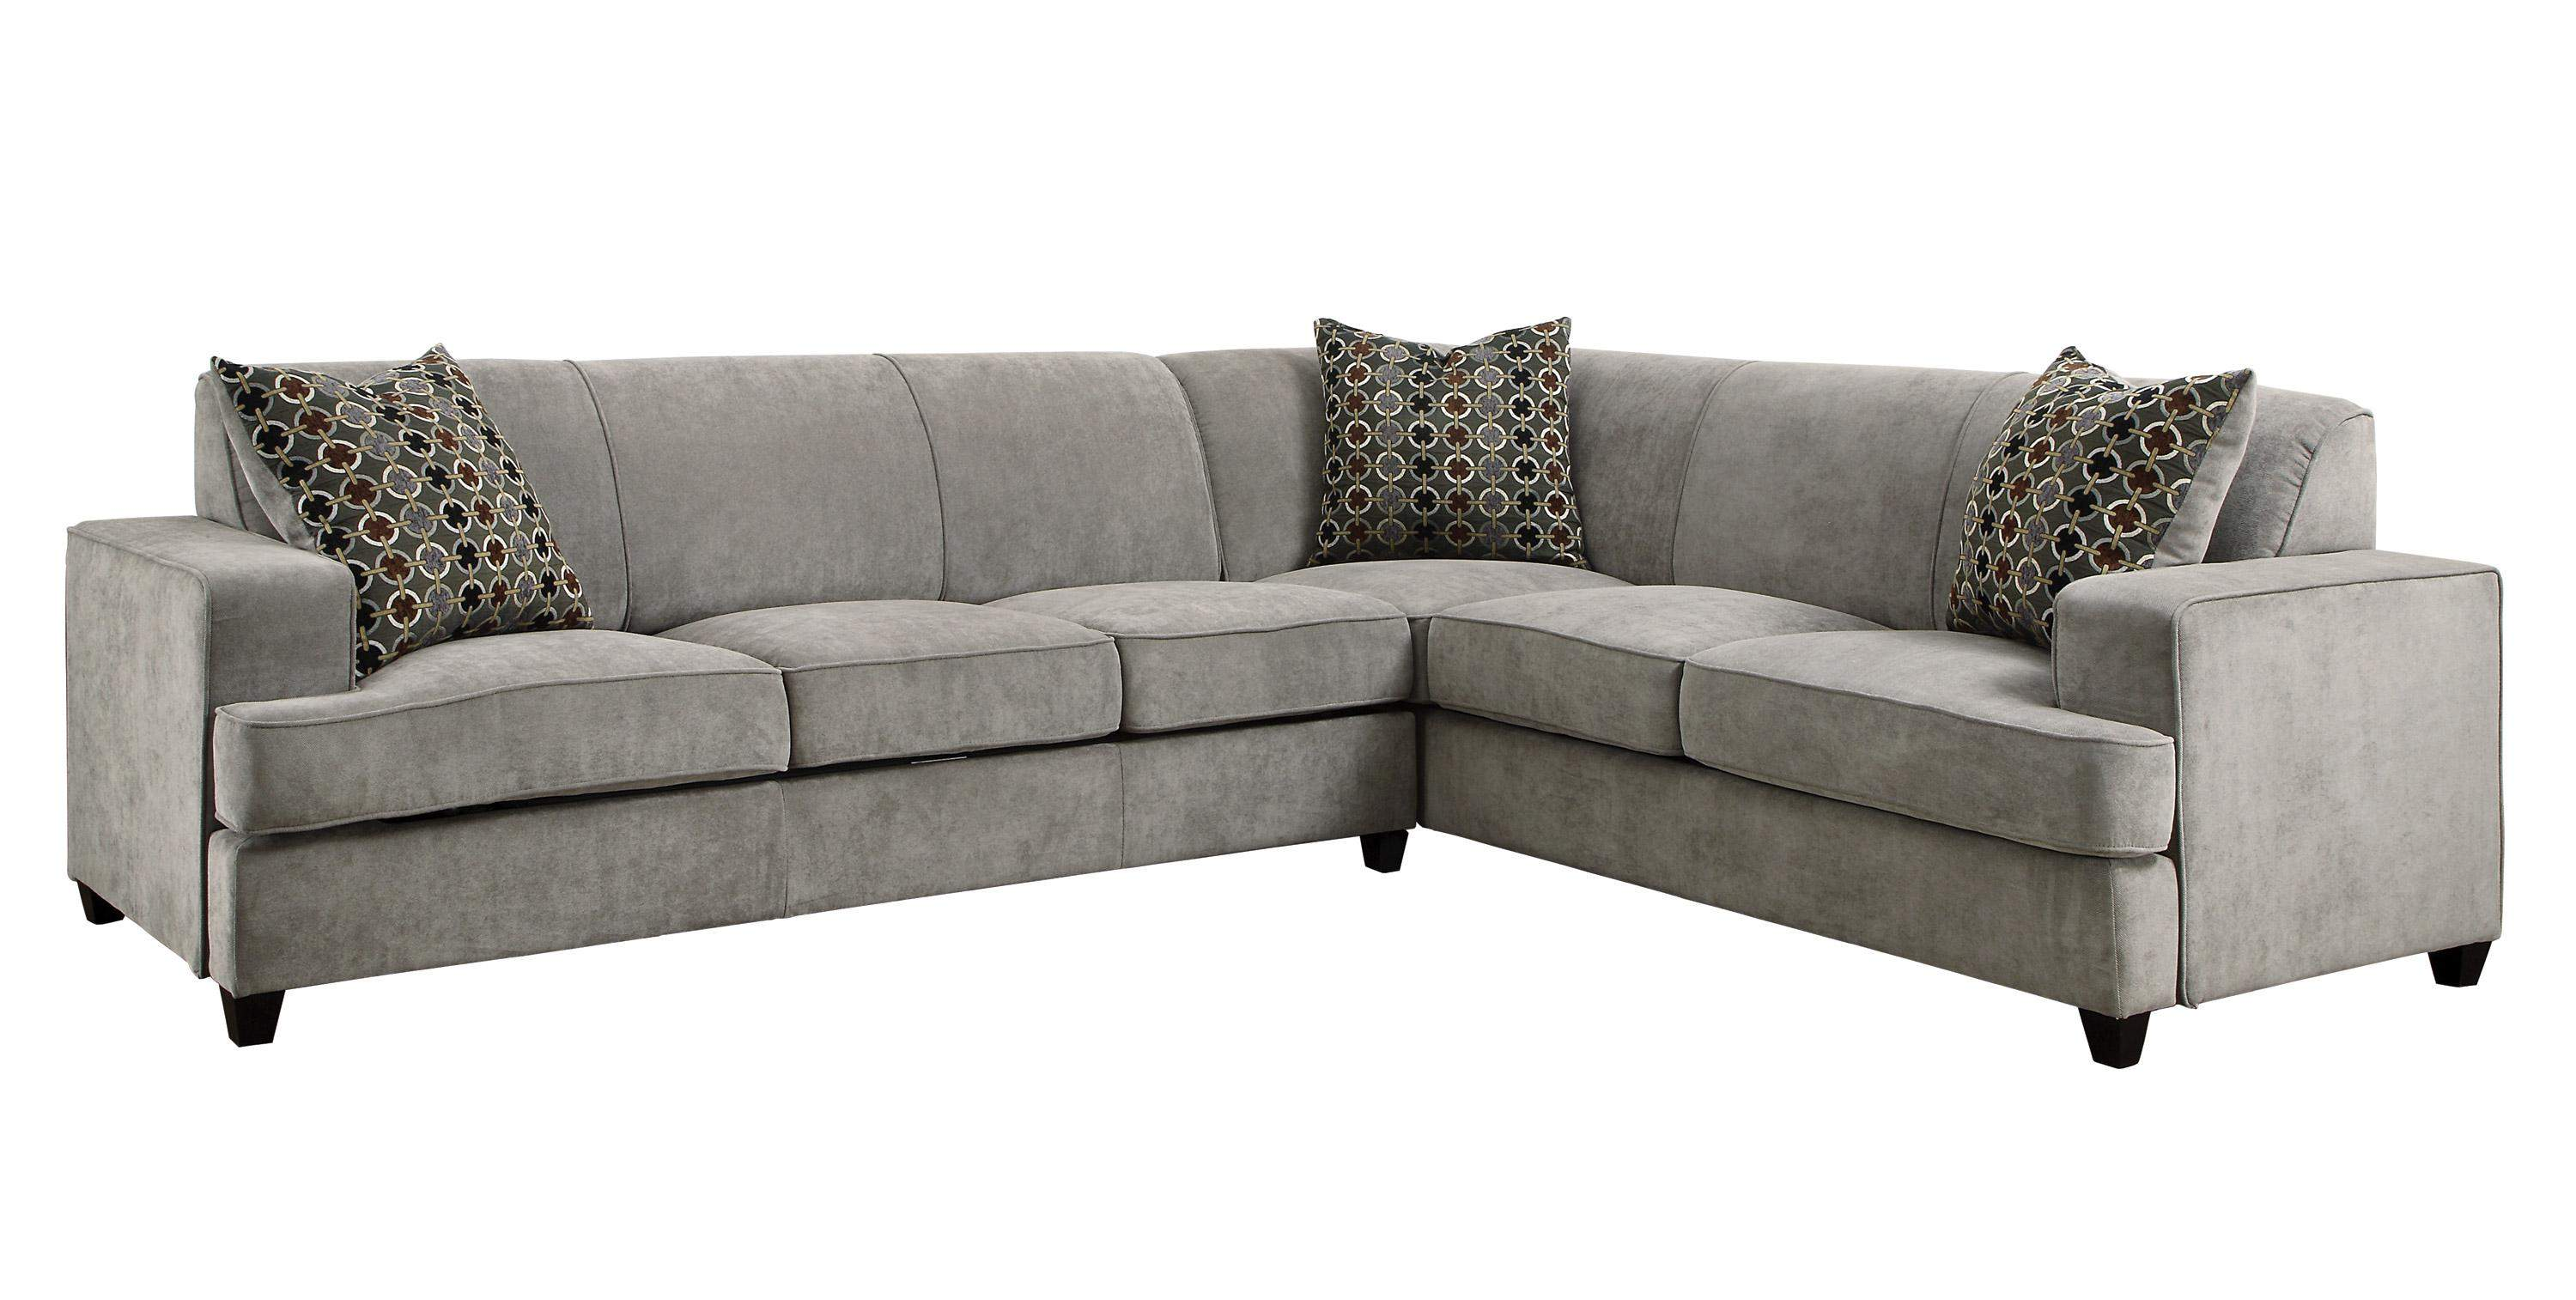 Tess Casual Grey Fabric Sectional Sofa For Corners With